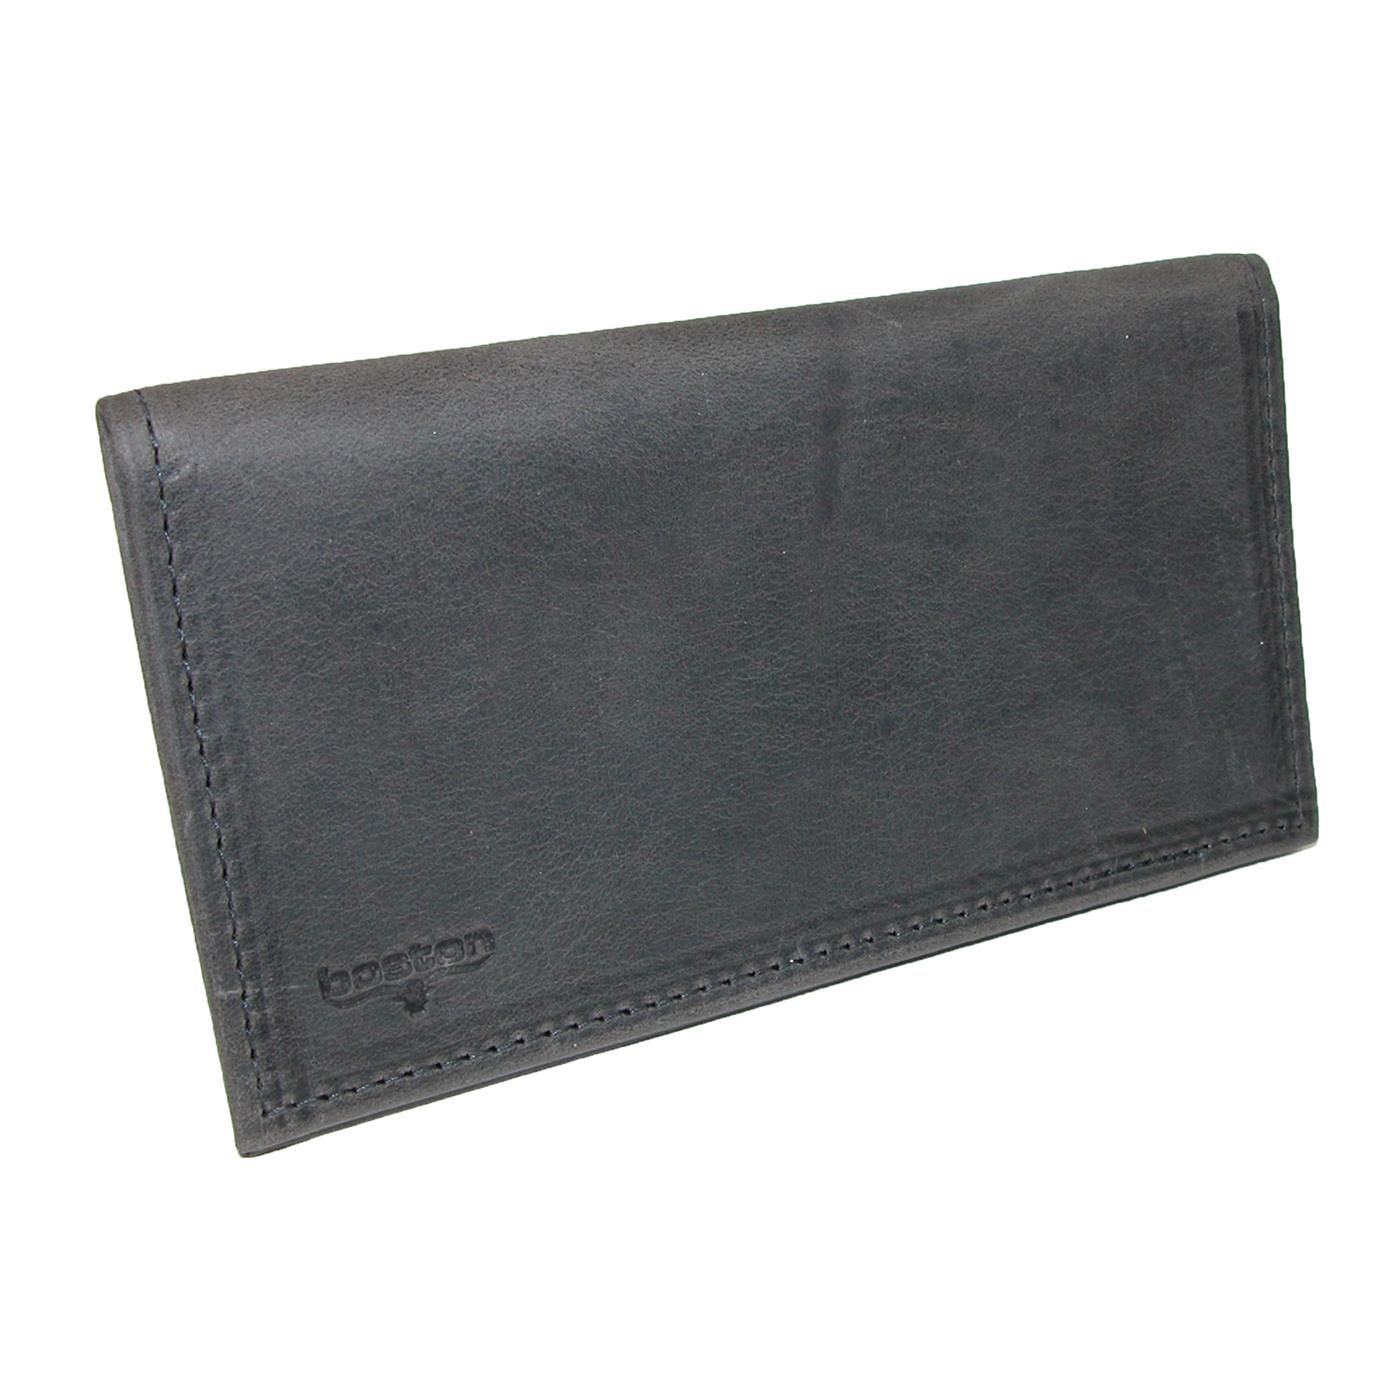 Boston Leather Distressed Leather Checkbook Cover